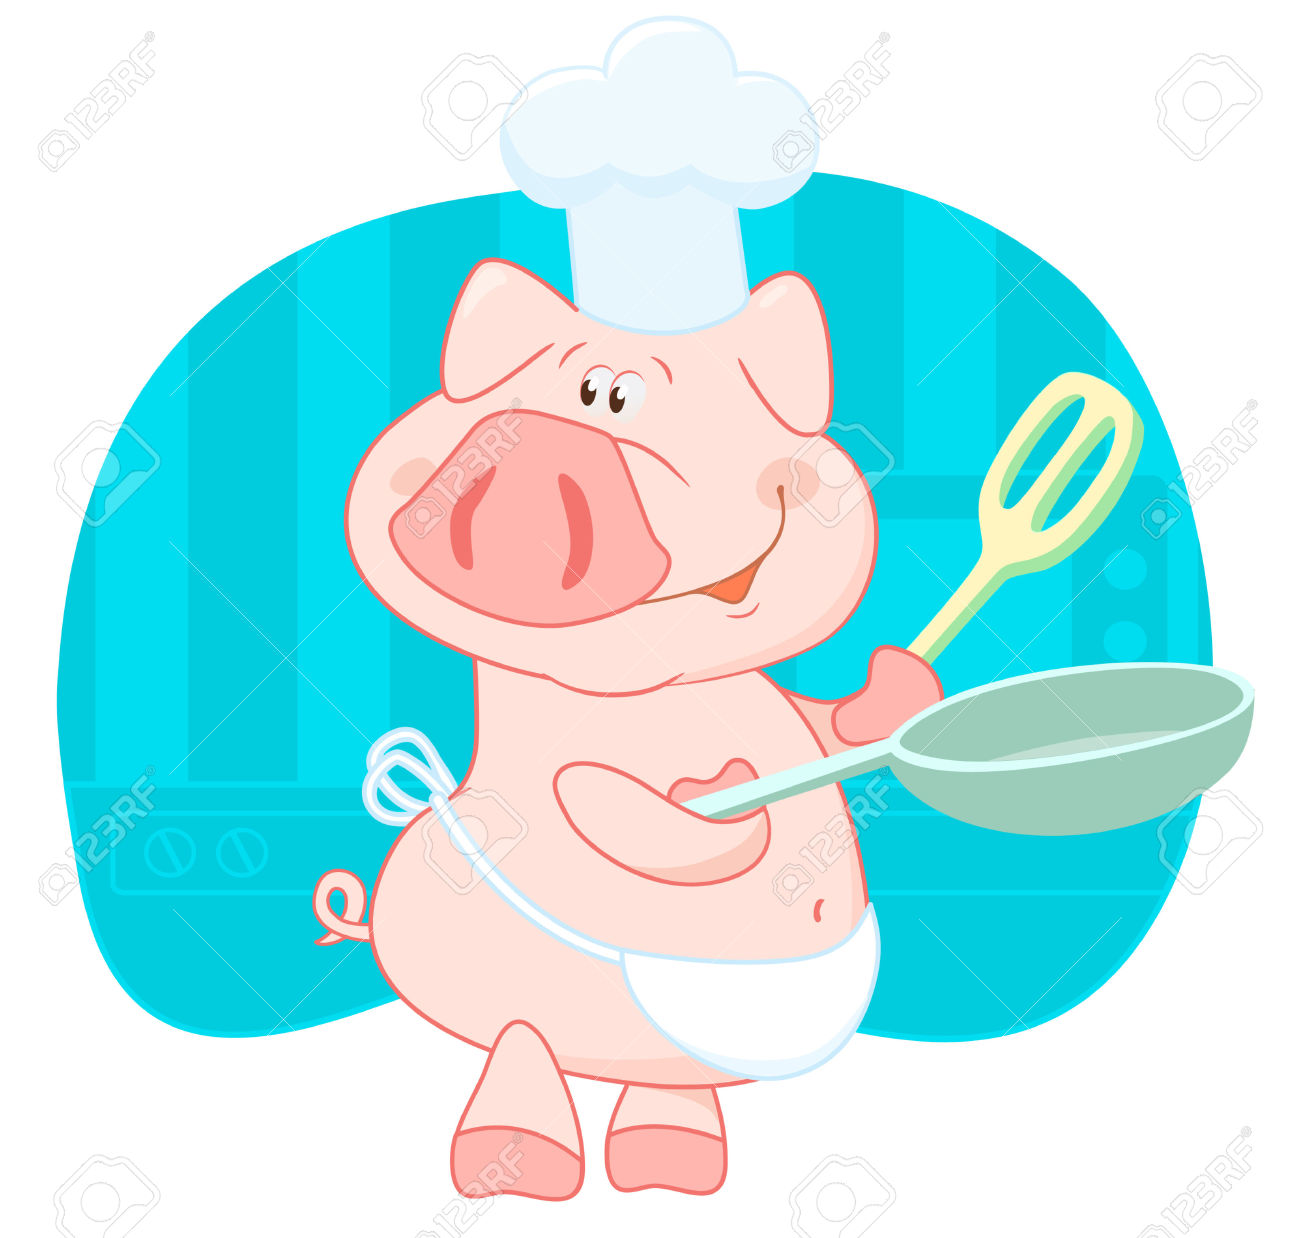 3272587-Pig-cook-in-the-shell-Stock-Vector-pig-cartoon-animals